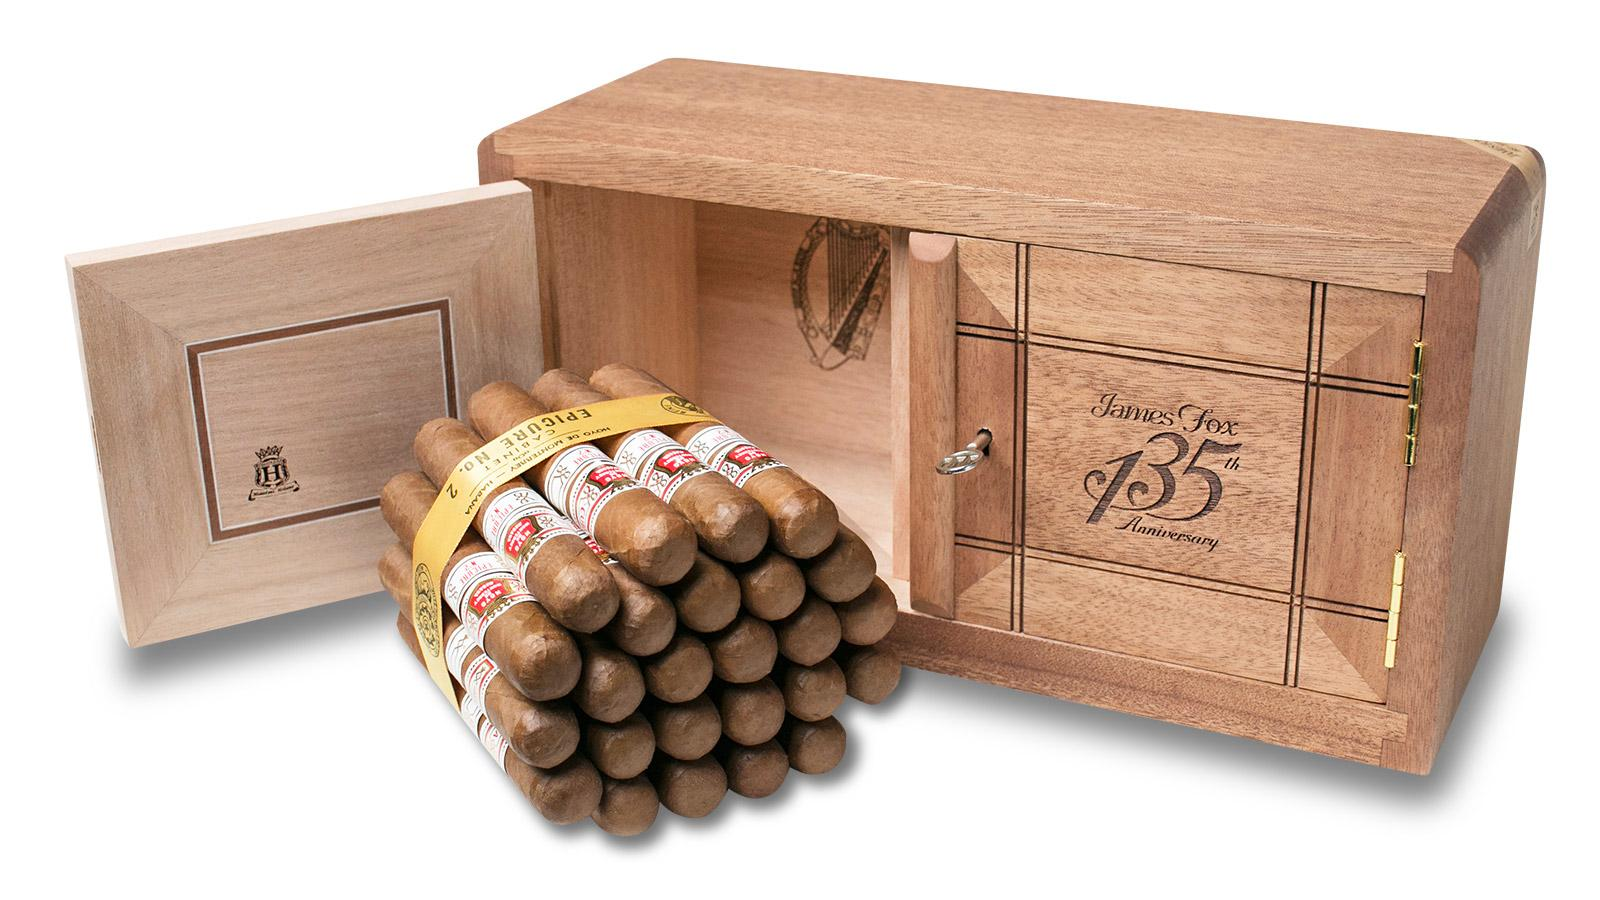 James Fox Celebrates 135 Years With Anniversary Humidor